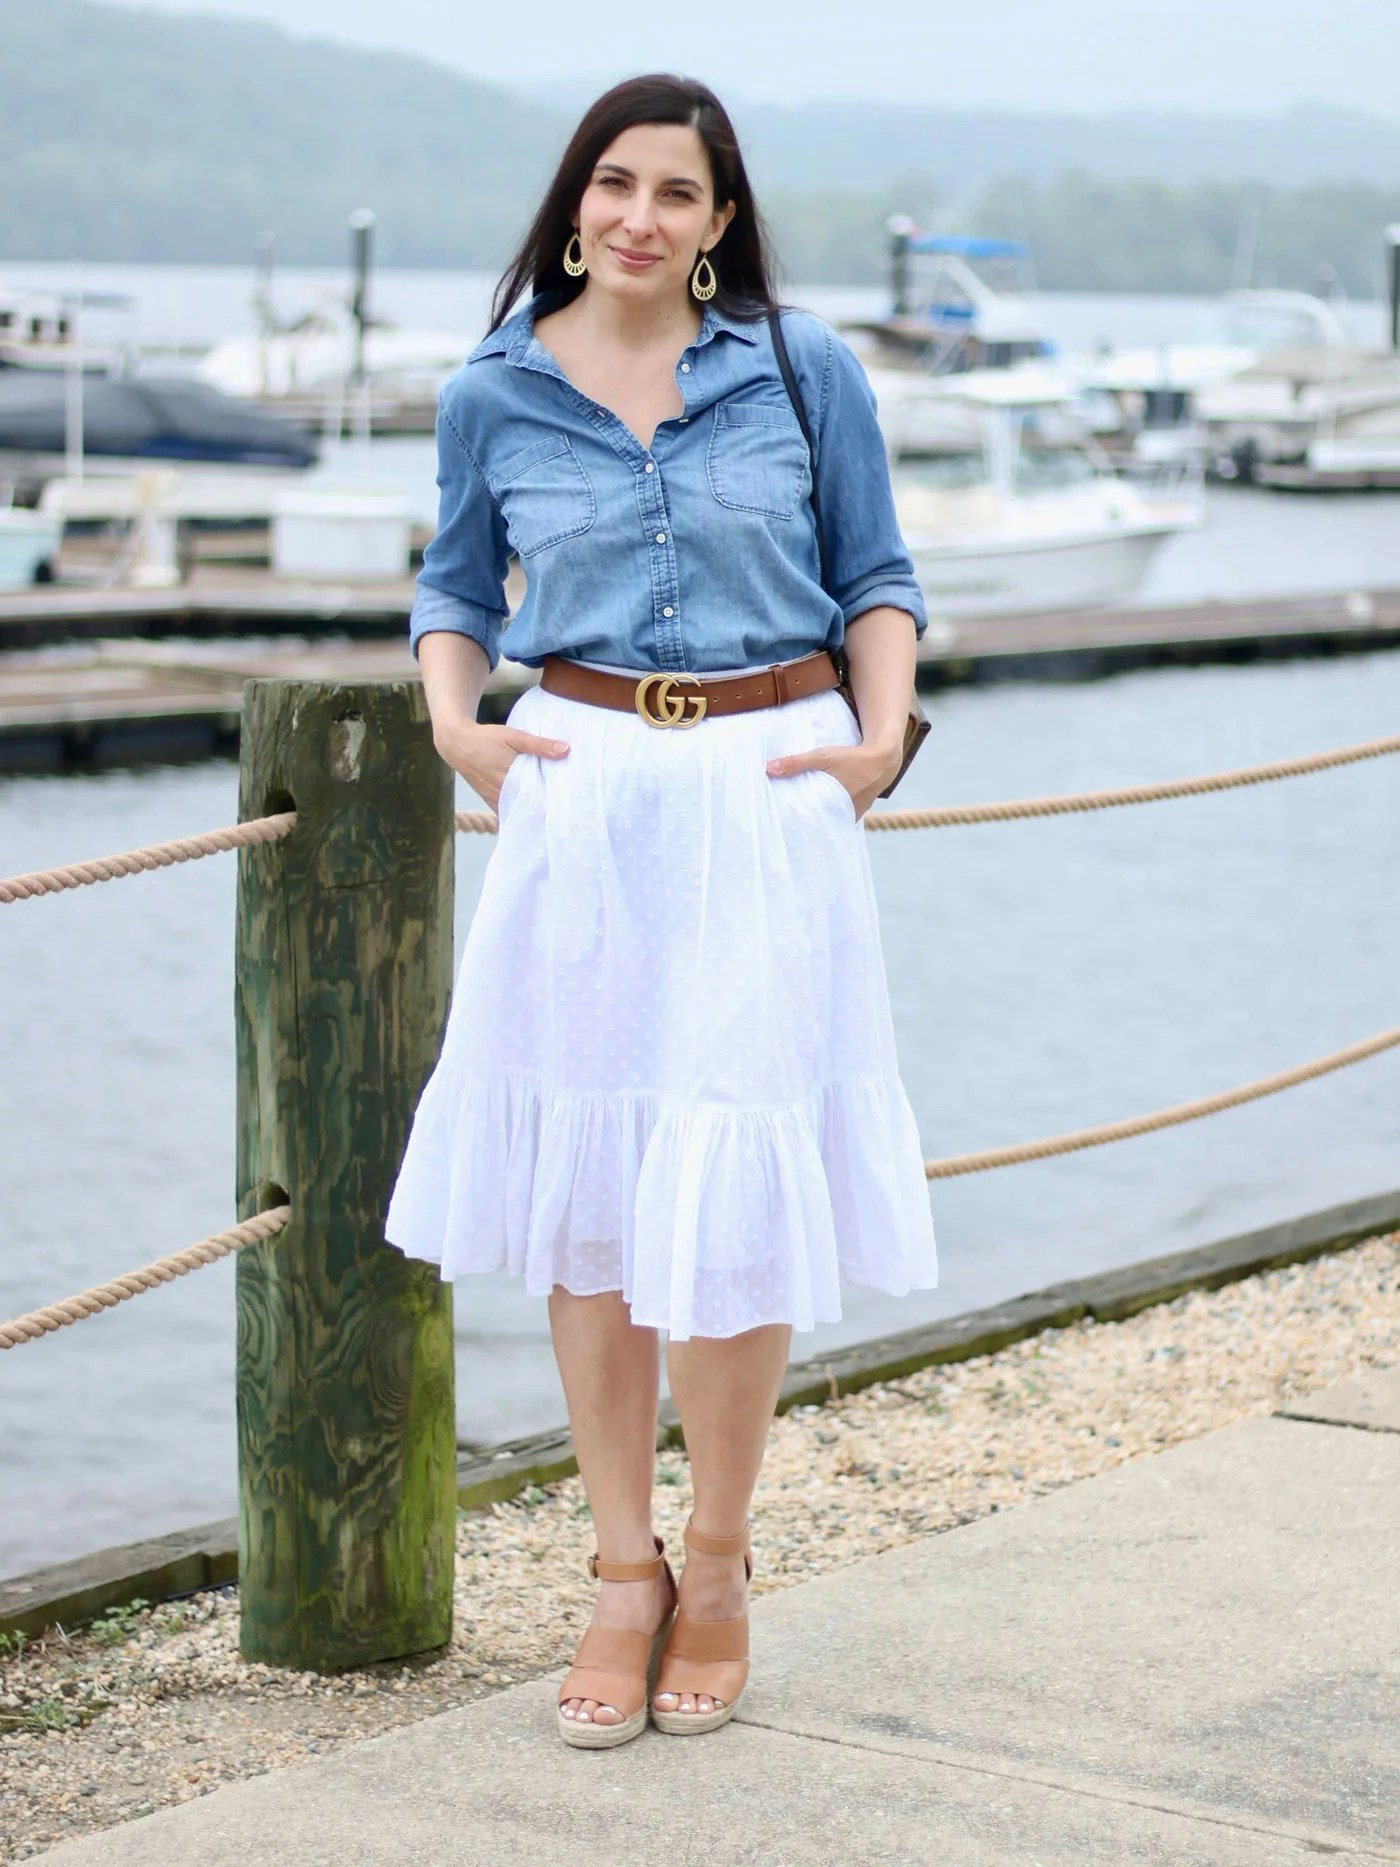 Chambray Shirt And White Skirt Classic Wardrobe Pieces